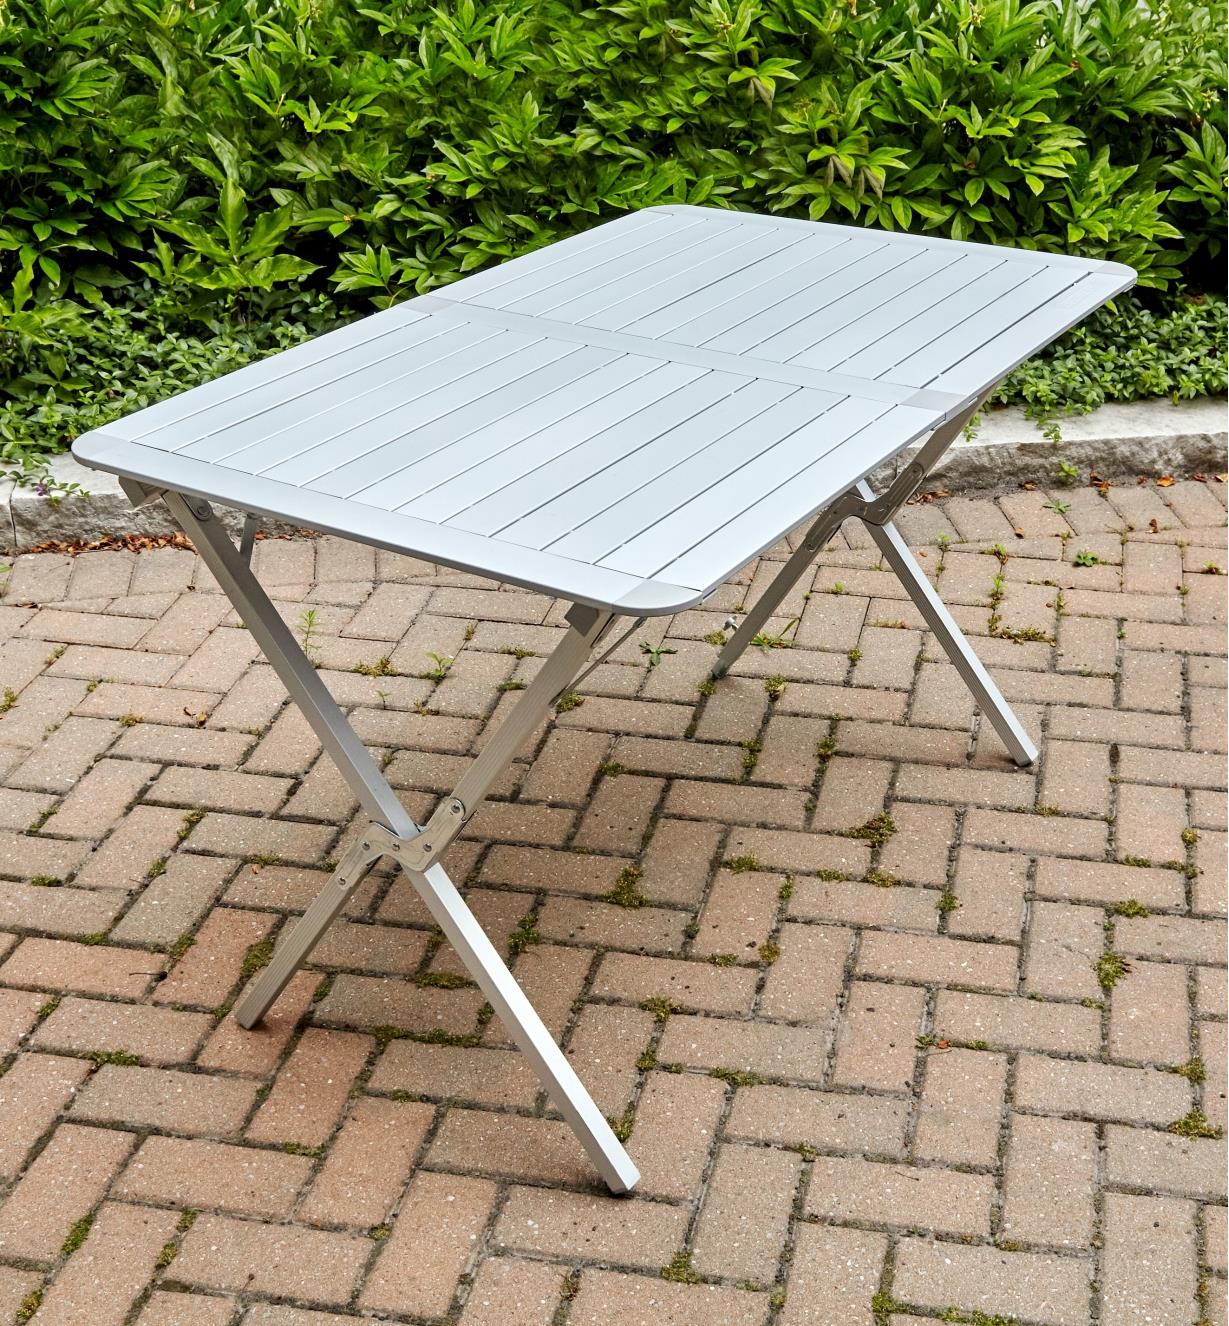 A folding aluminum table shown standing on an interlocking brick patio